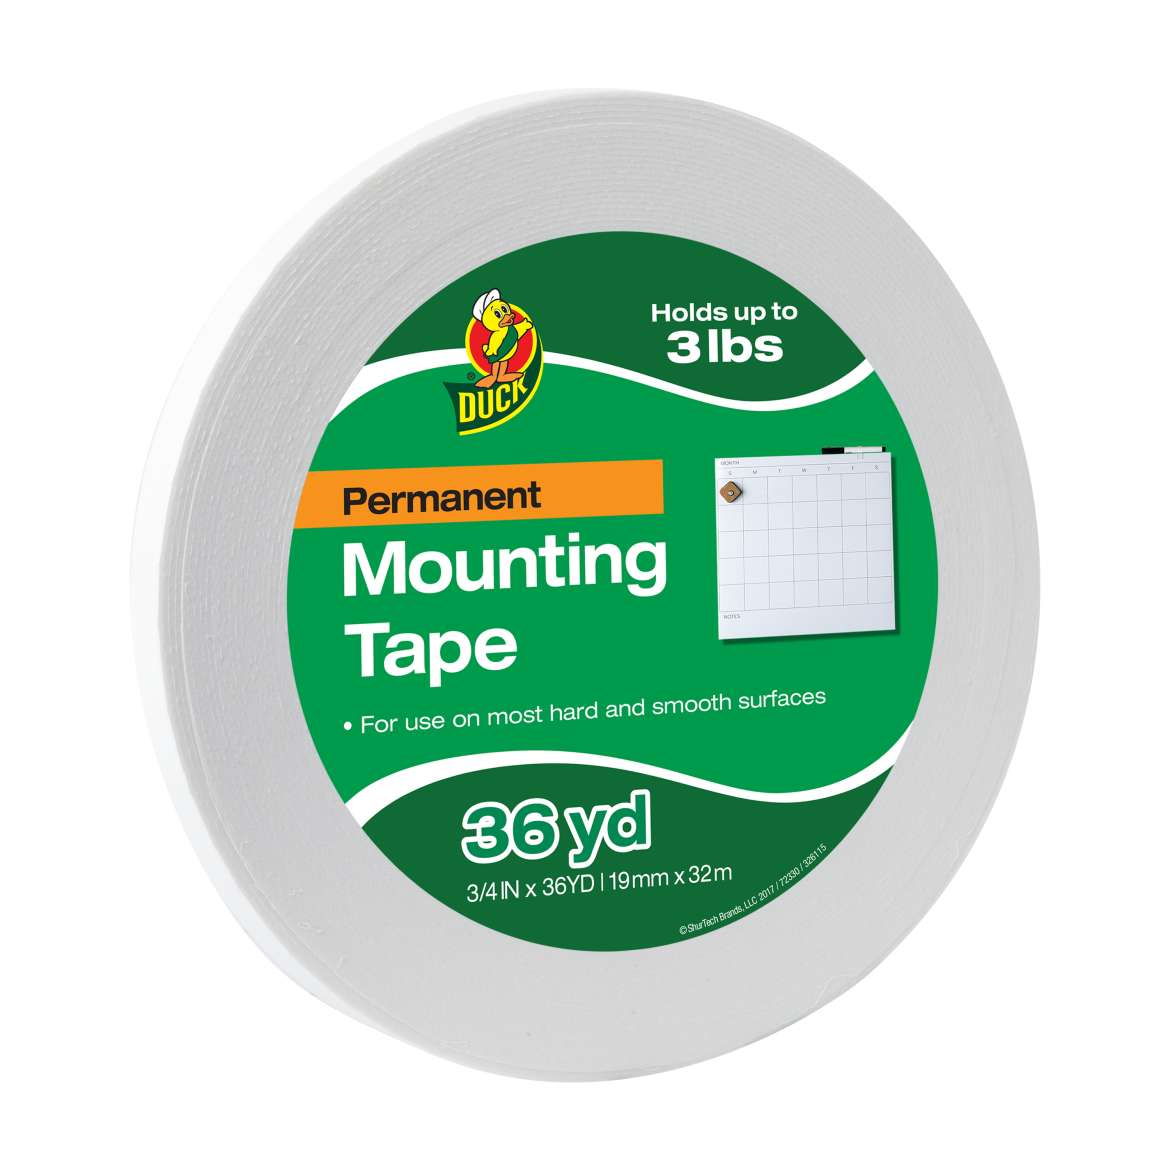 Permanent Mounting Tape